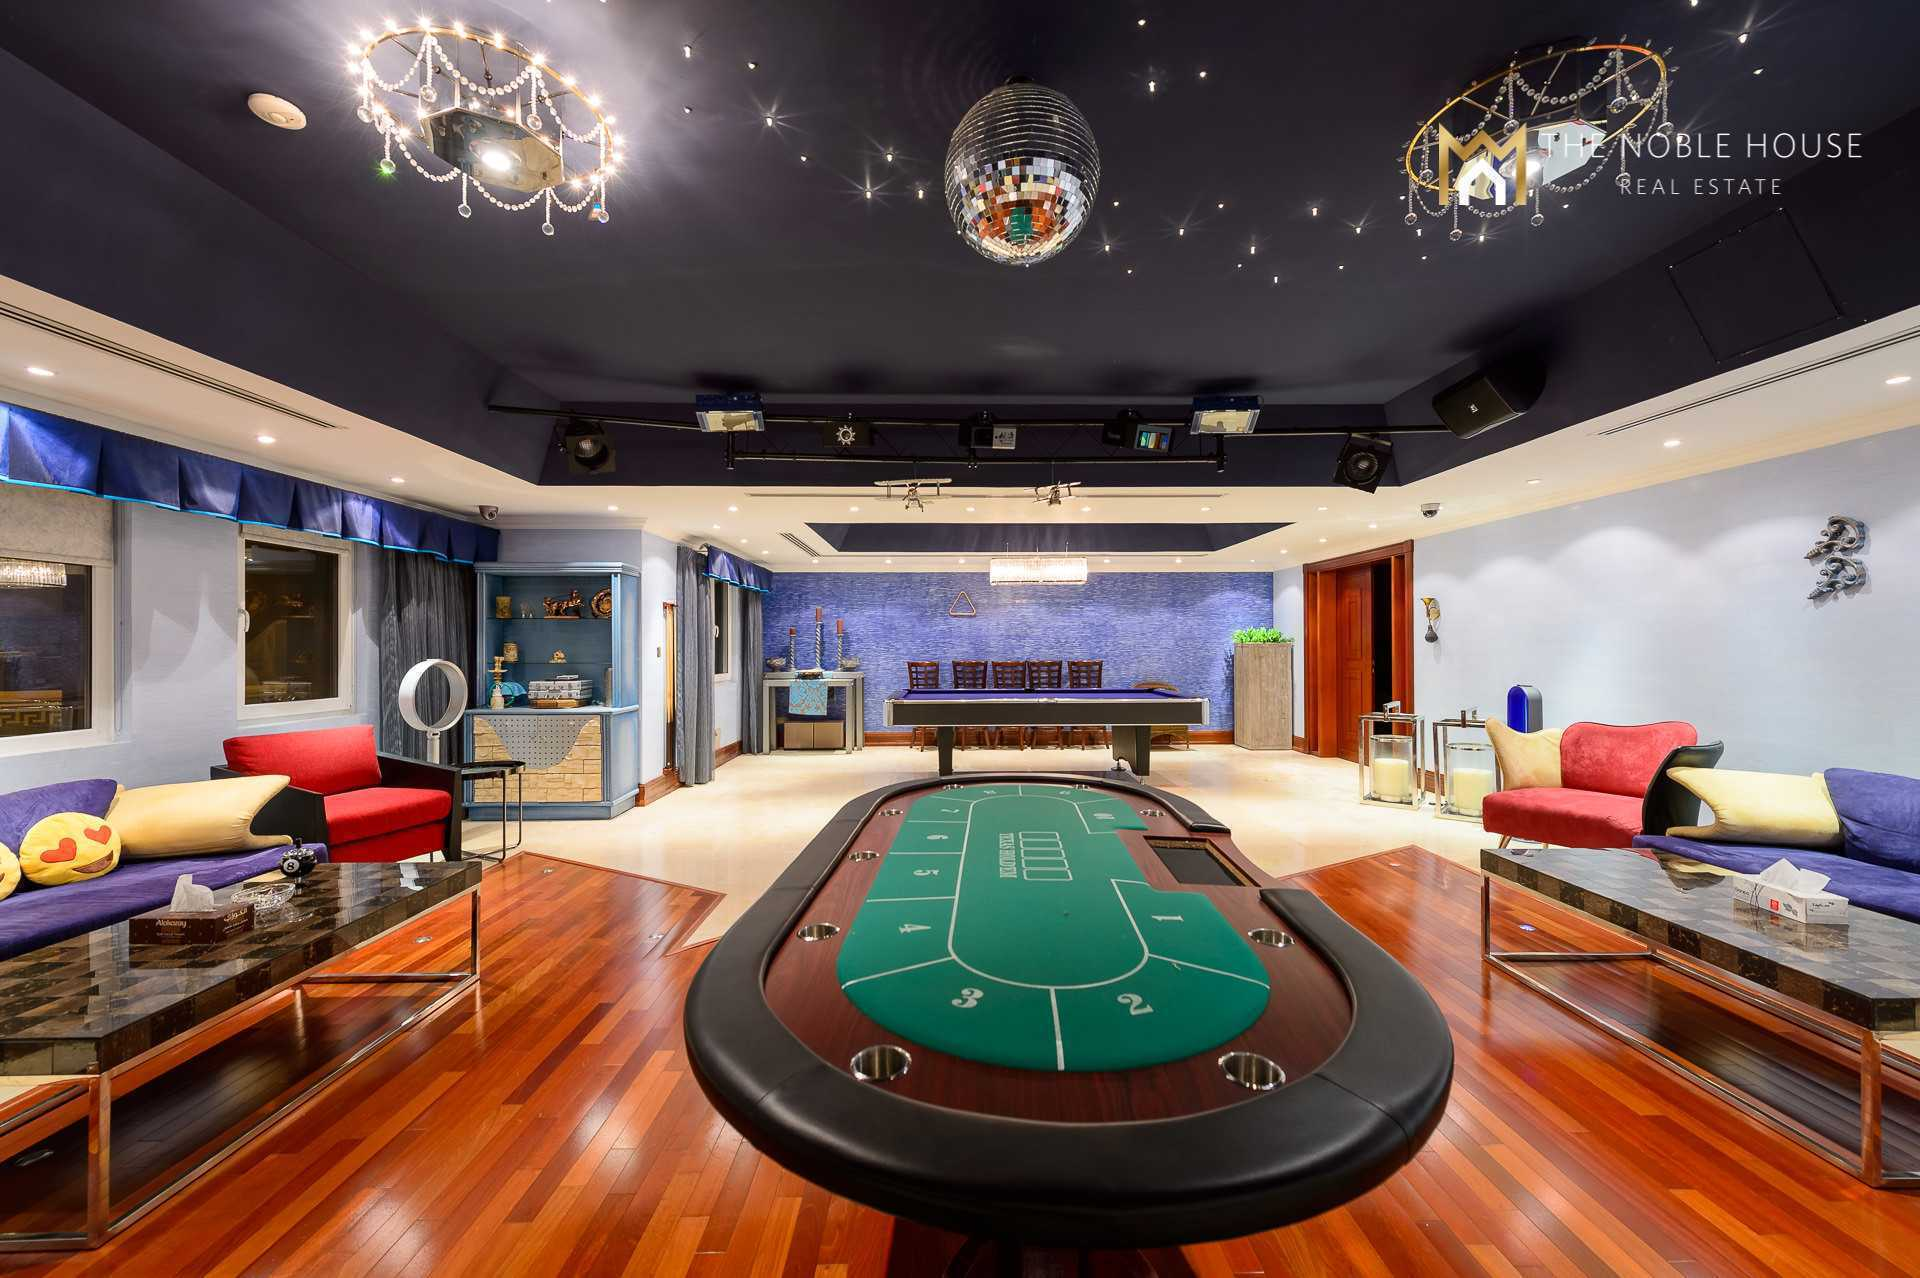 Poker and Pool Table